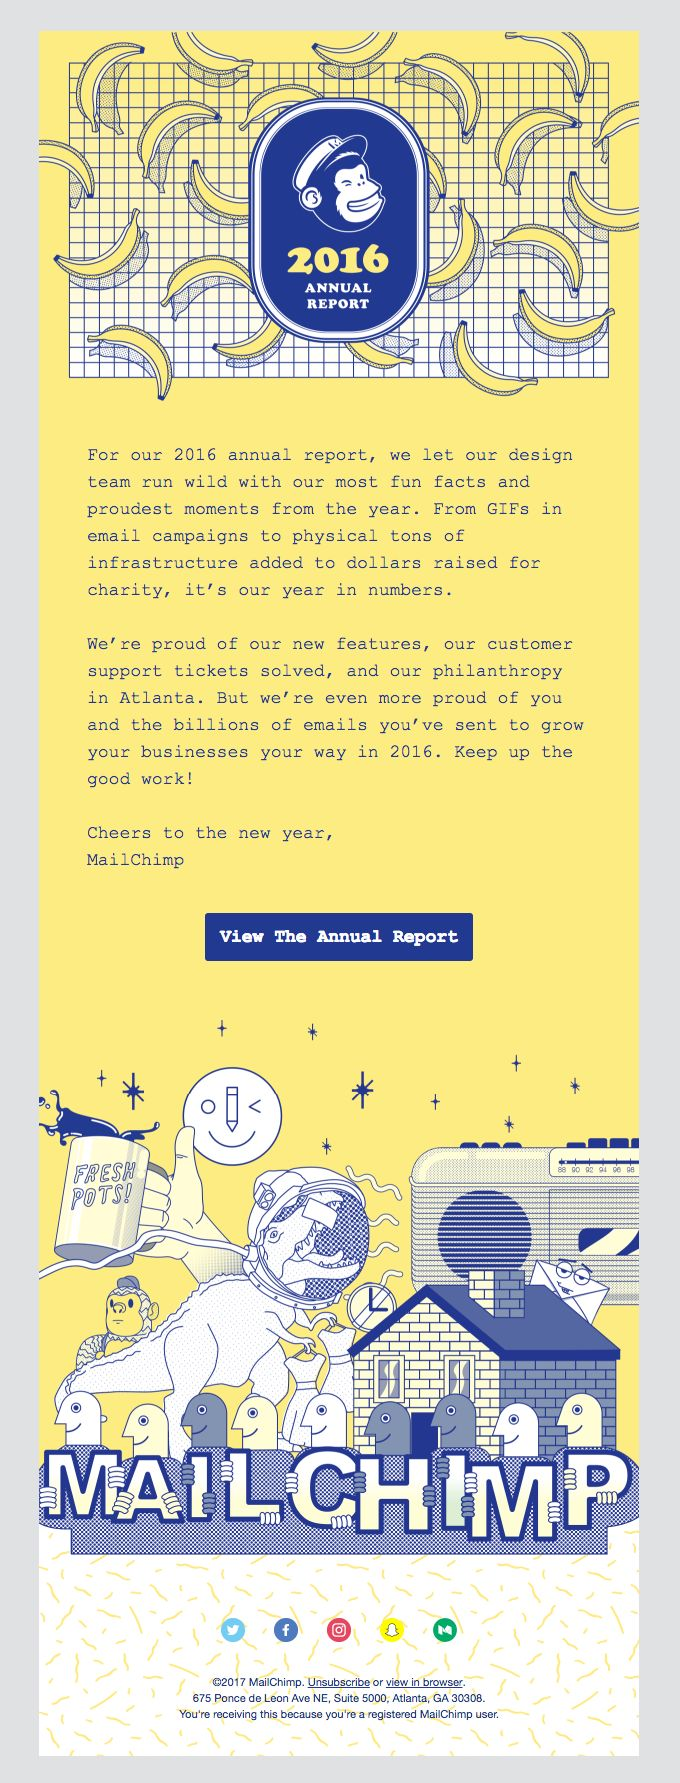 Our 2016 annual report - Really Good Emails